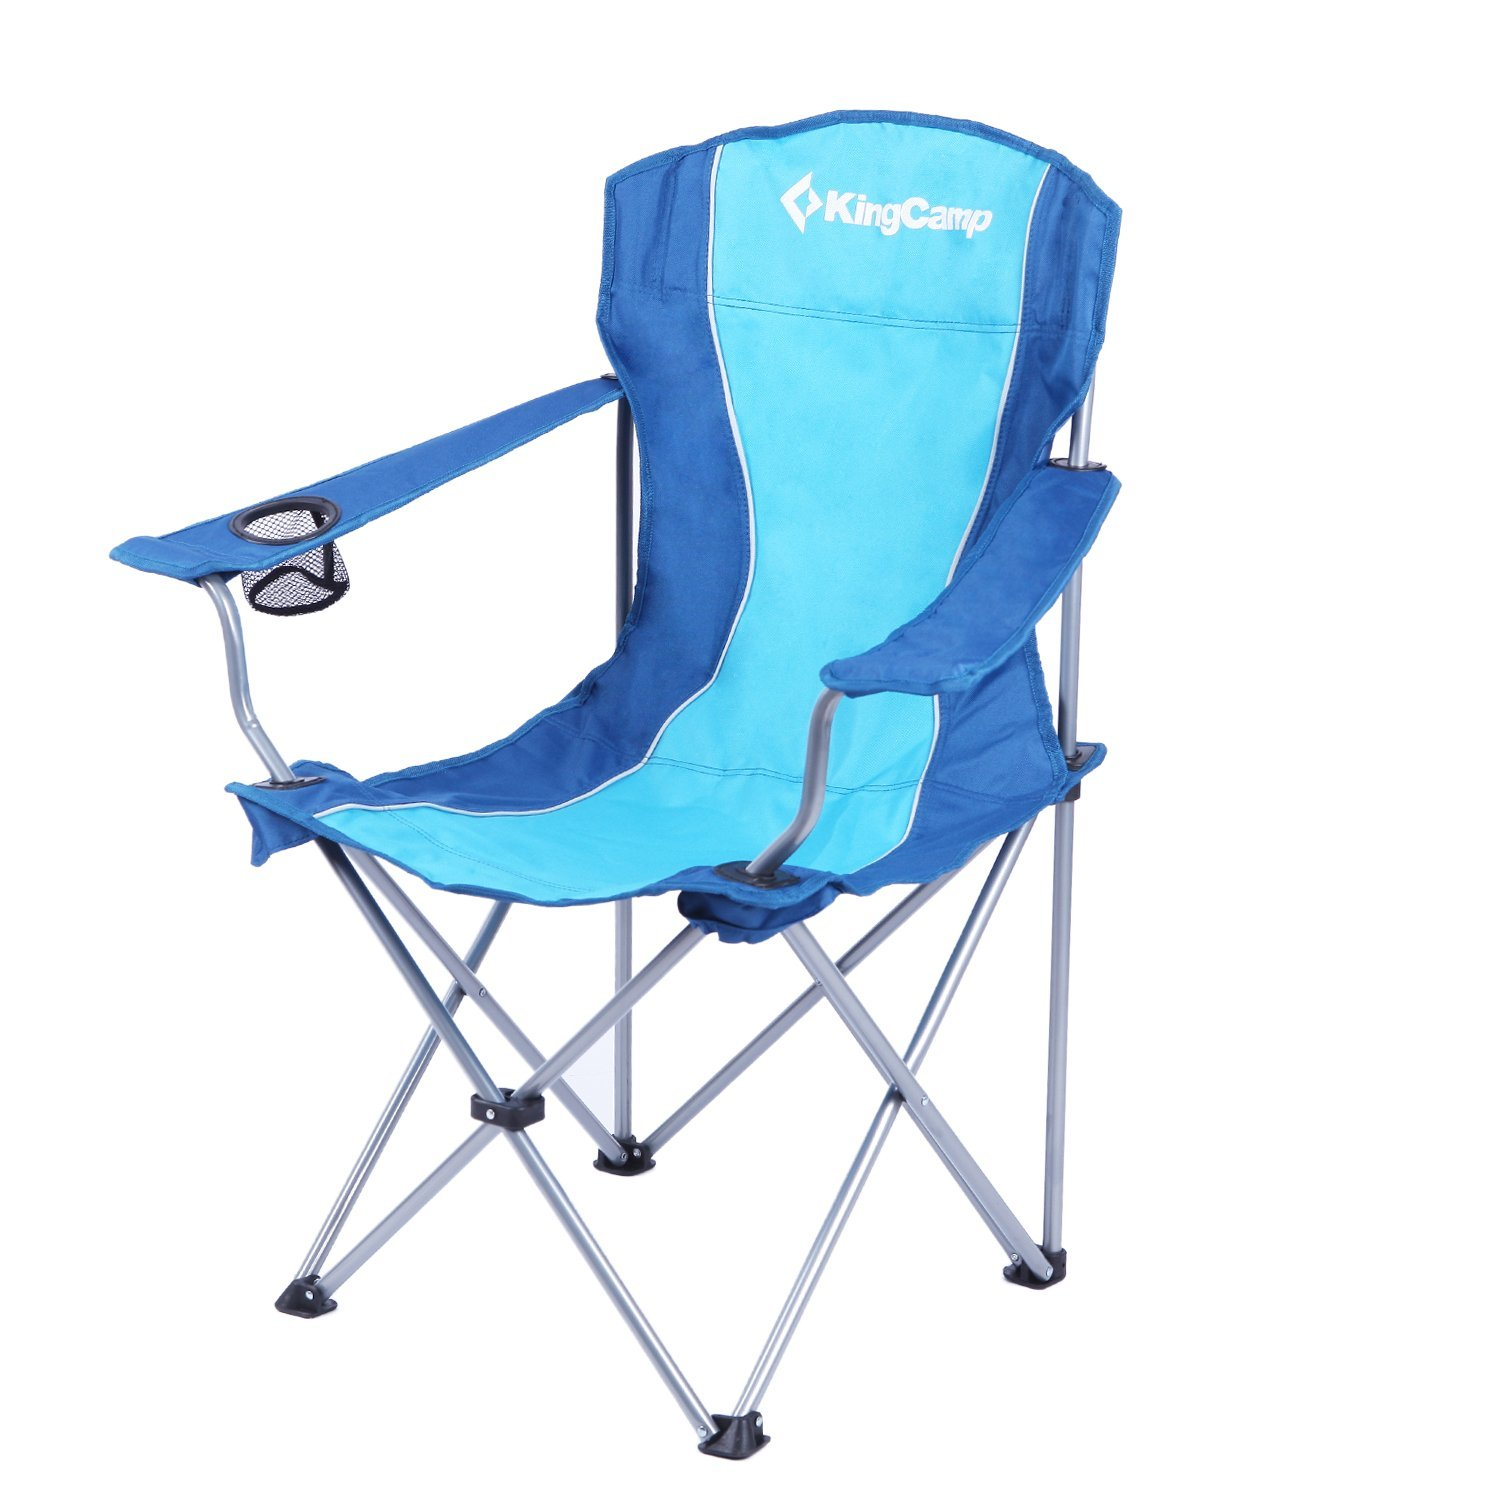 padded camping chair vinyl straps for patio chairs kingcamp folding camp quad steel frame with armrest and mesh cup holder oversized light